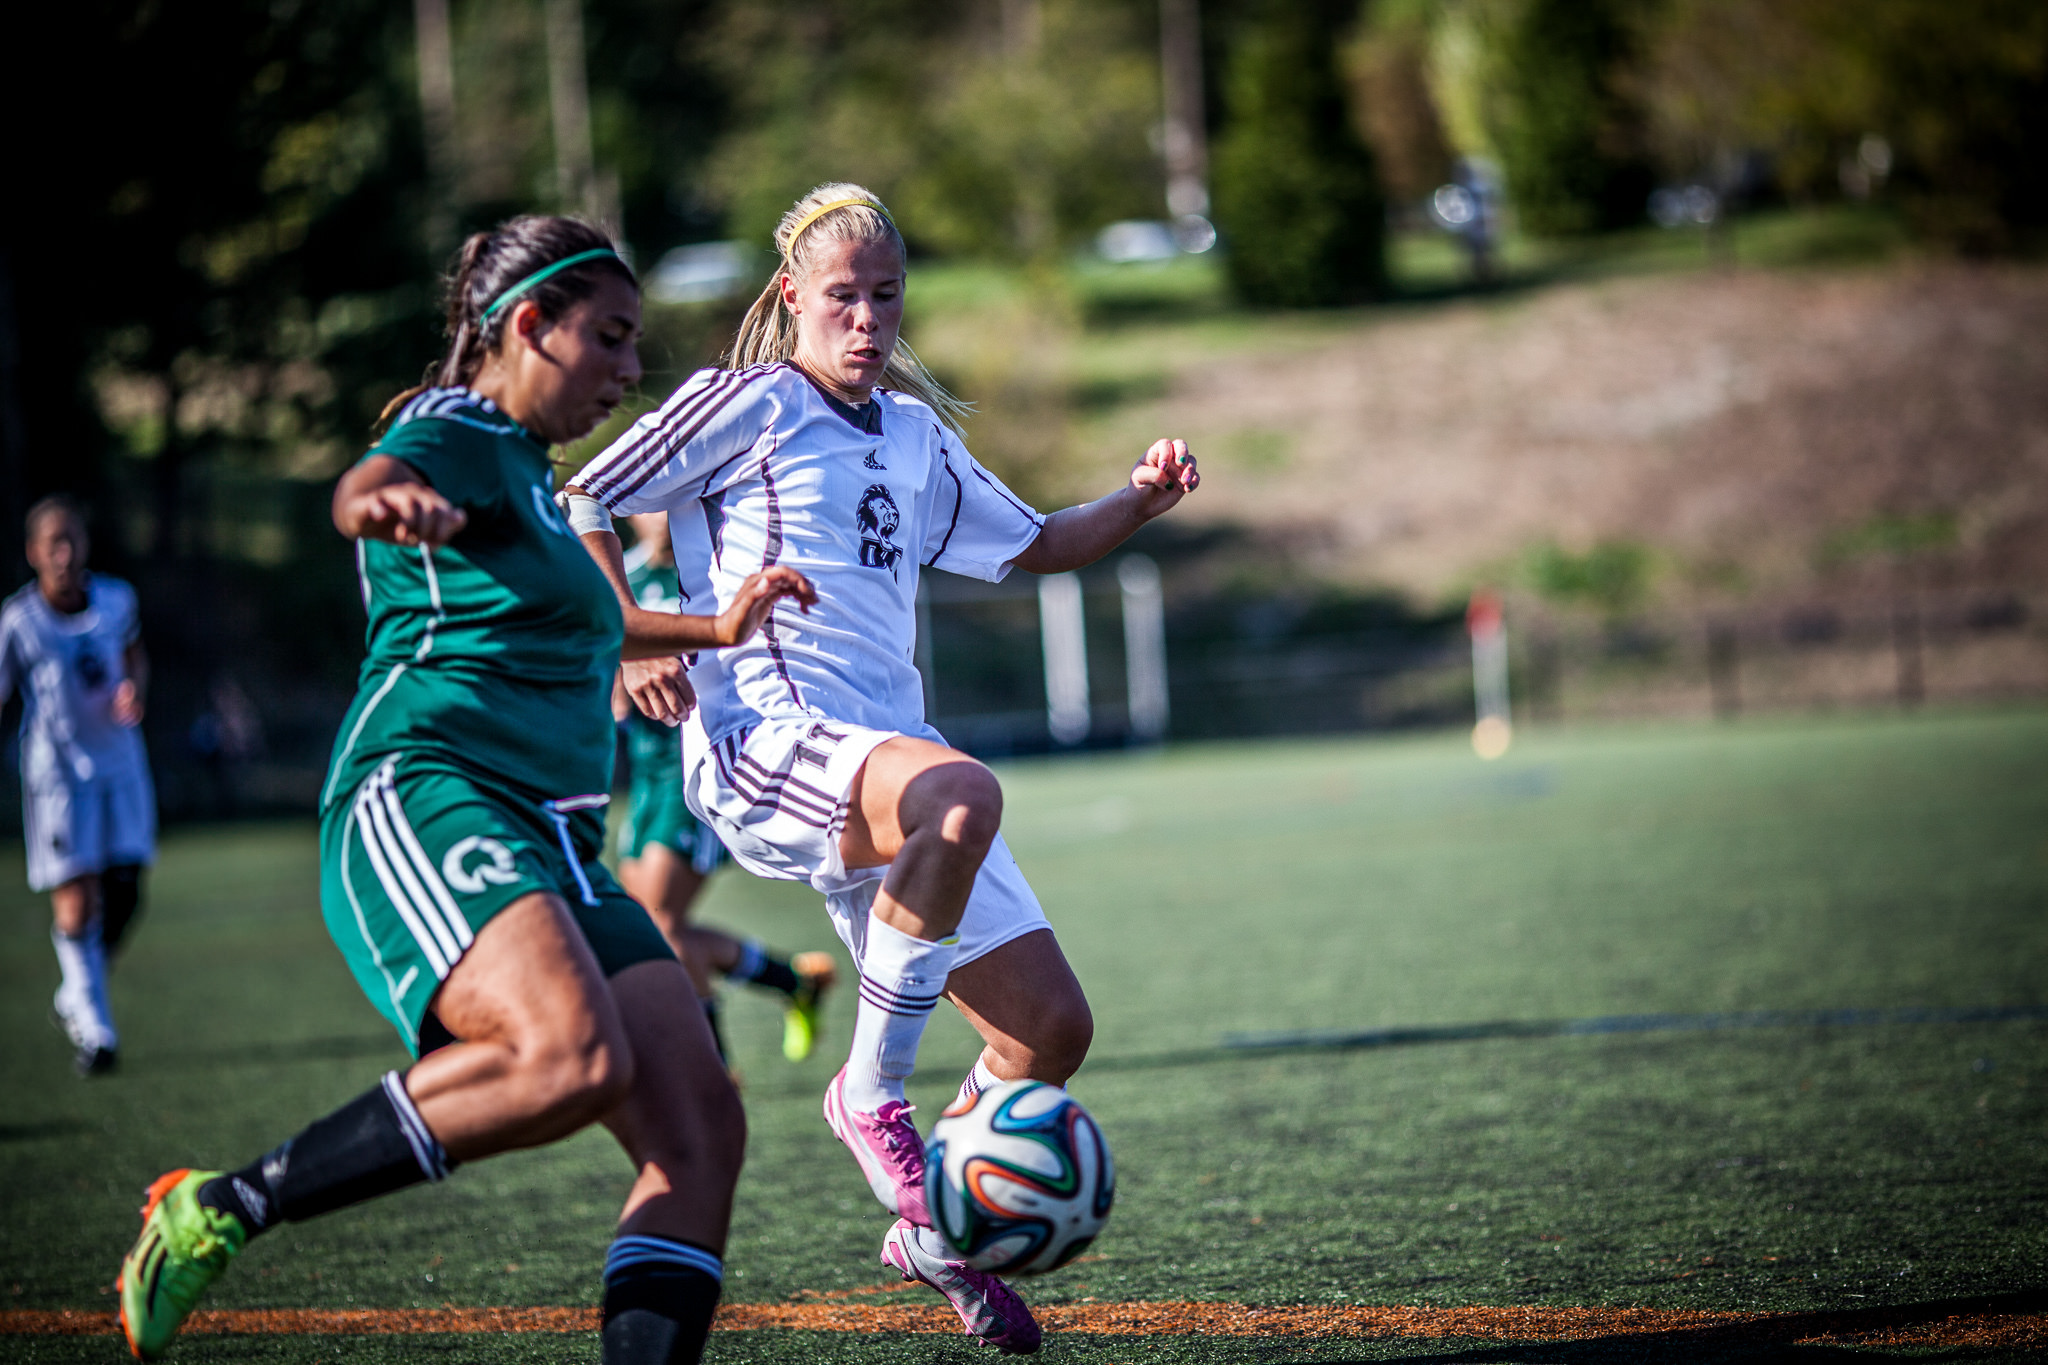 Campus Life and Athletics flickr (photo from 2014 soccer season)